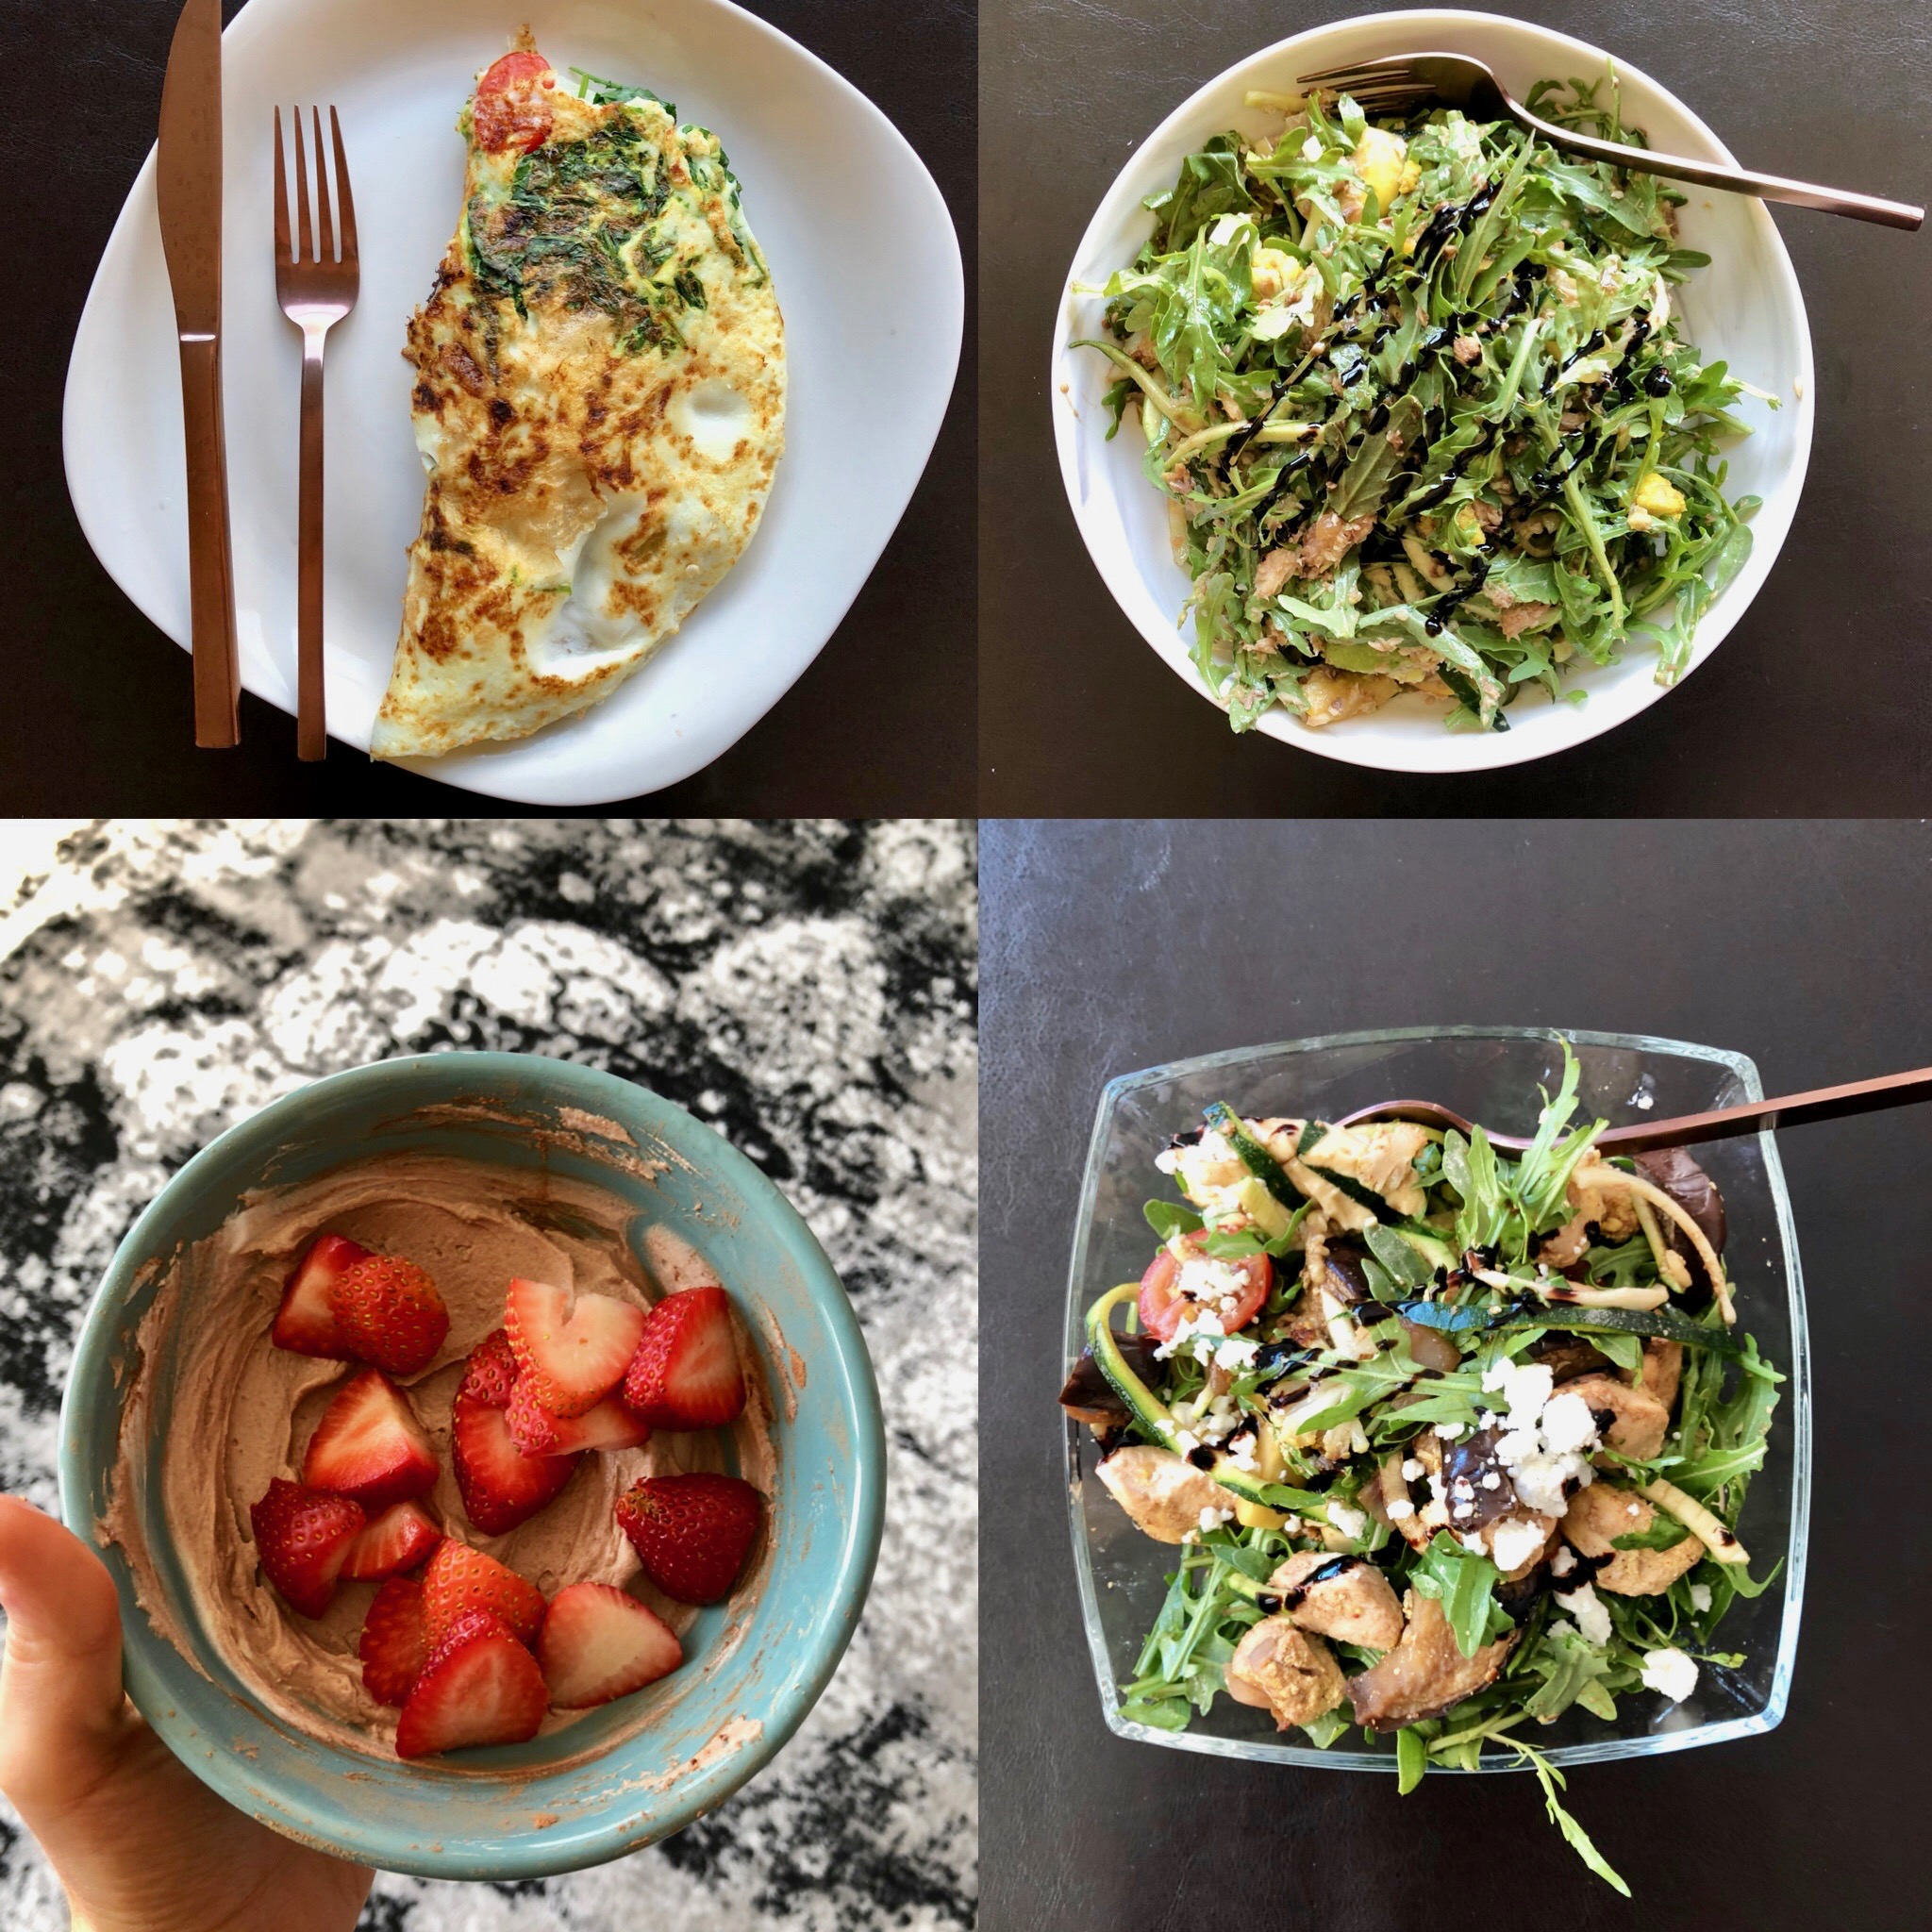 What I Ate Wednesday #371: On flexibility (and an actual Wednesday)